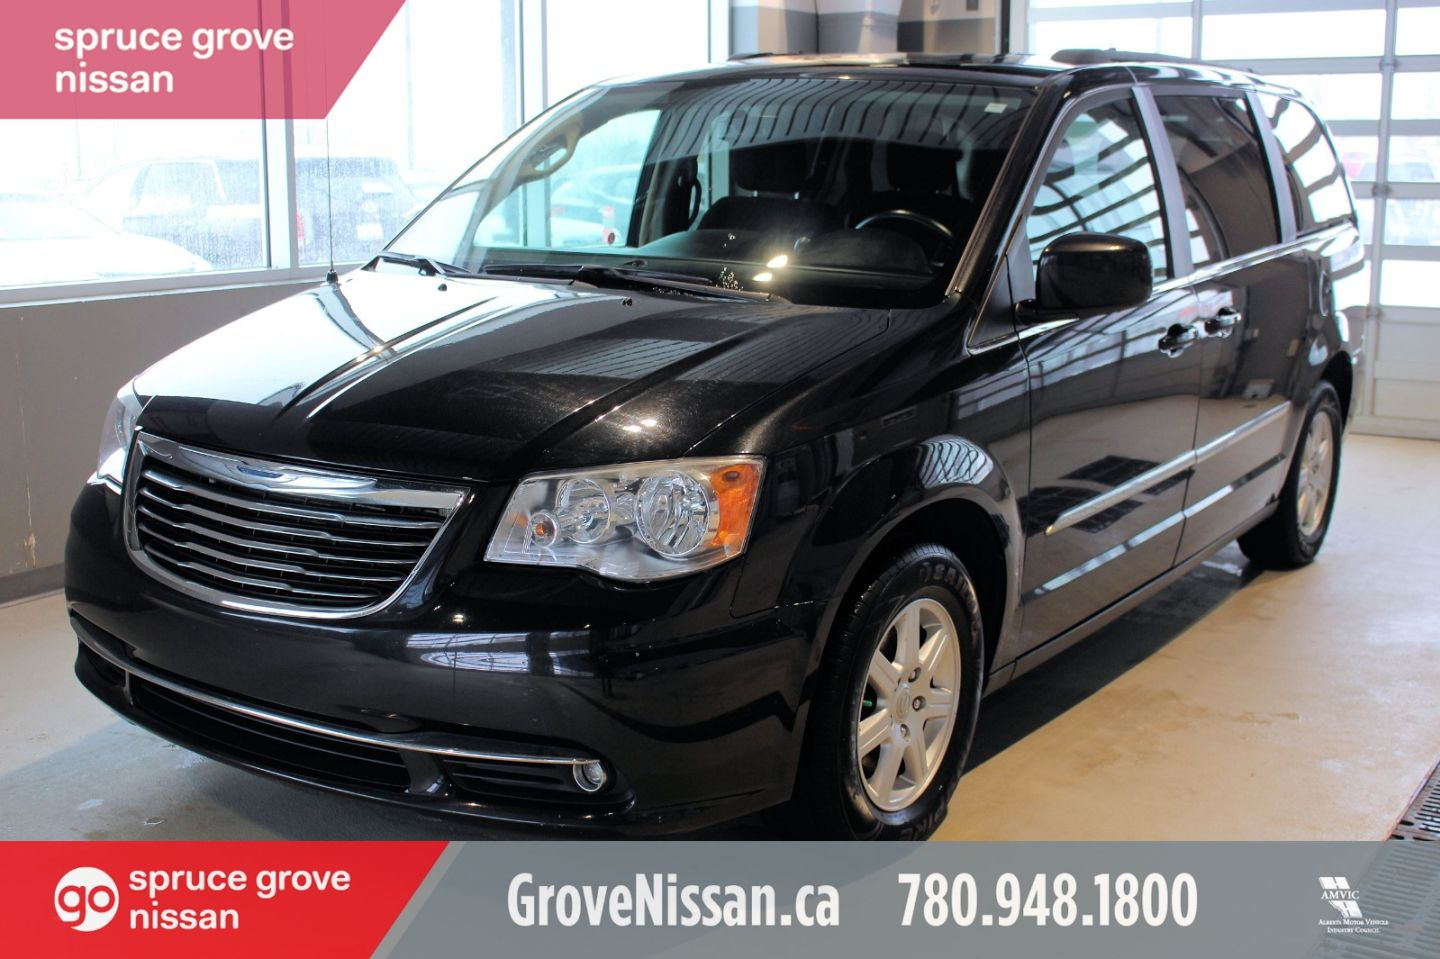 2012 Chrysler Town & Country Touring for sale in Spruce Grove, Alberta